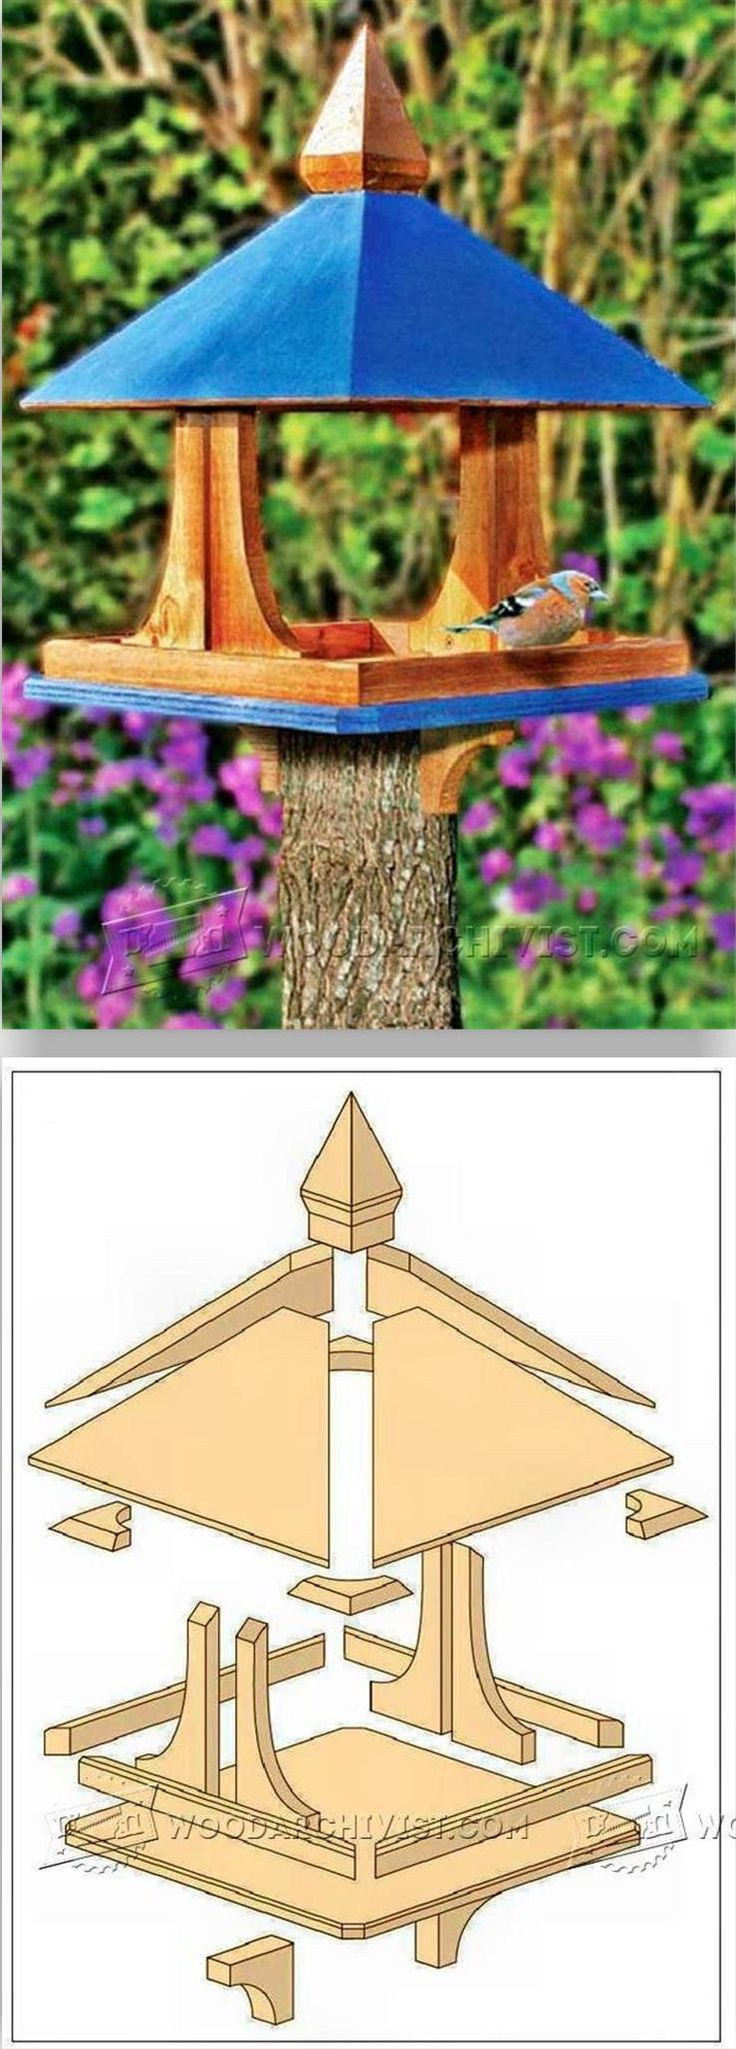 DIY Bird Feeder - Outdoor Plans and Projects | WoodArchivist.com